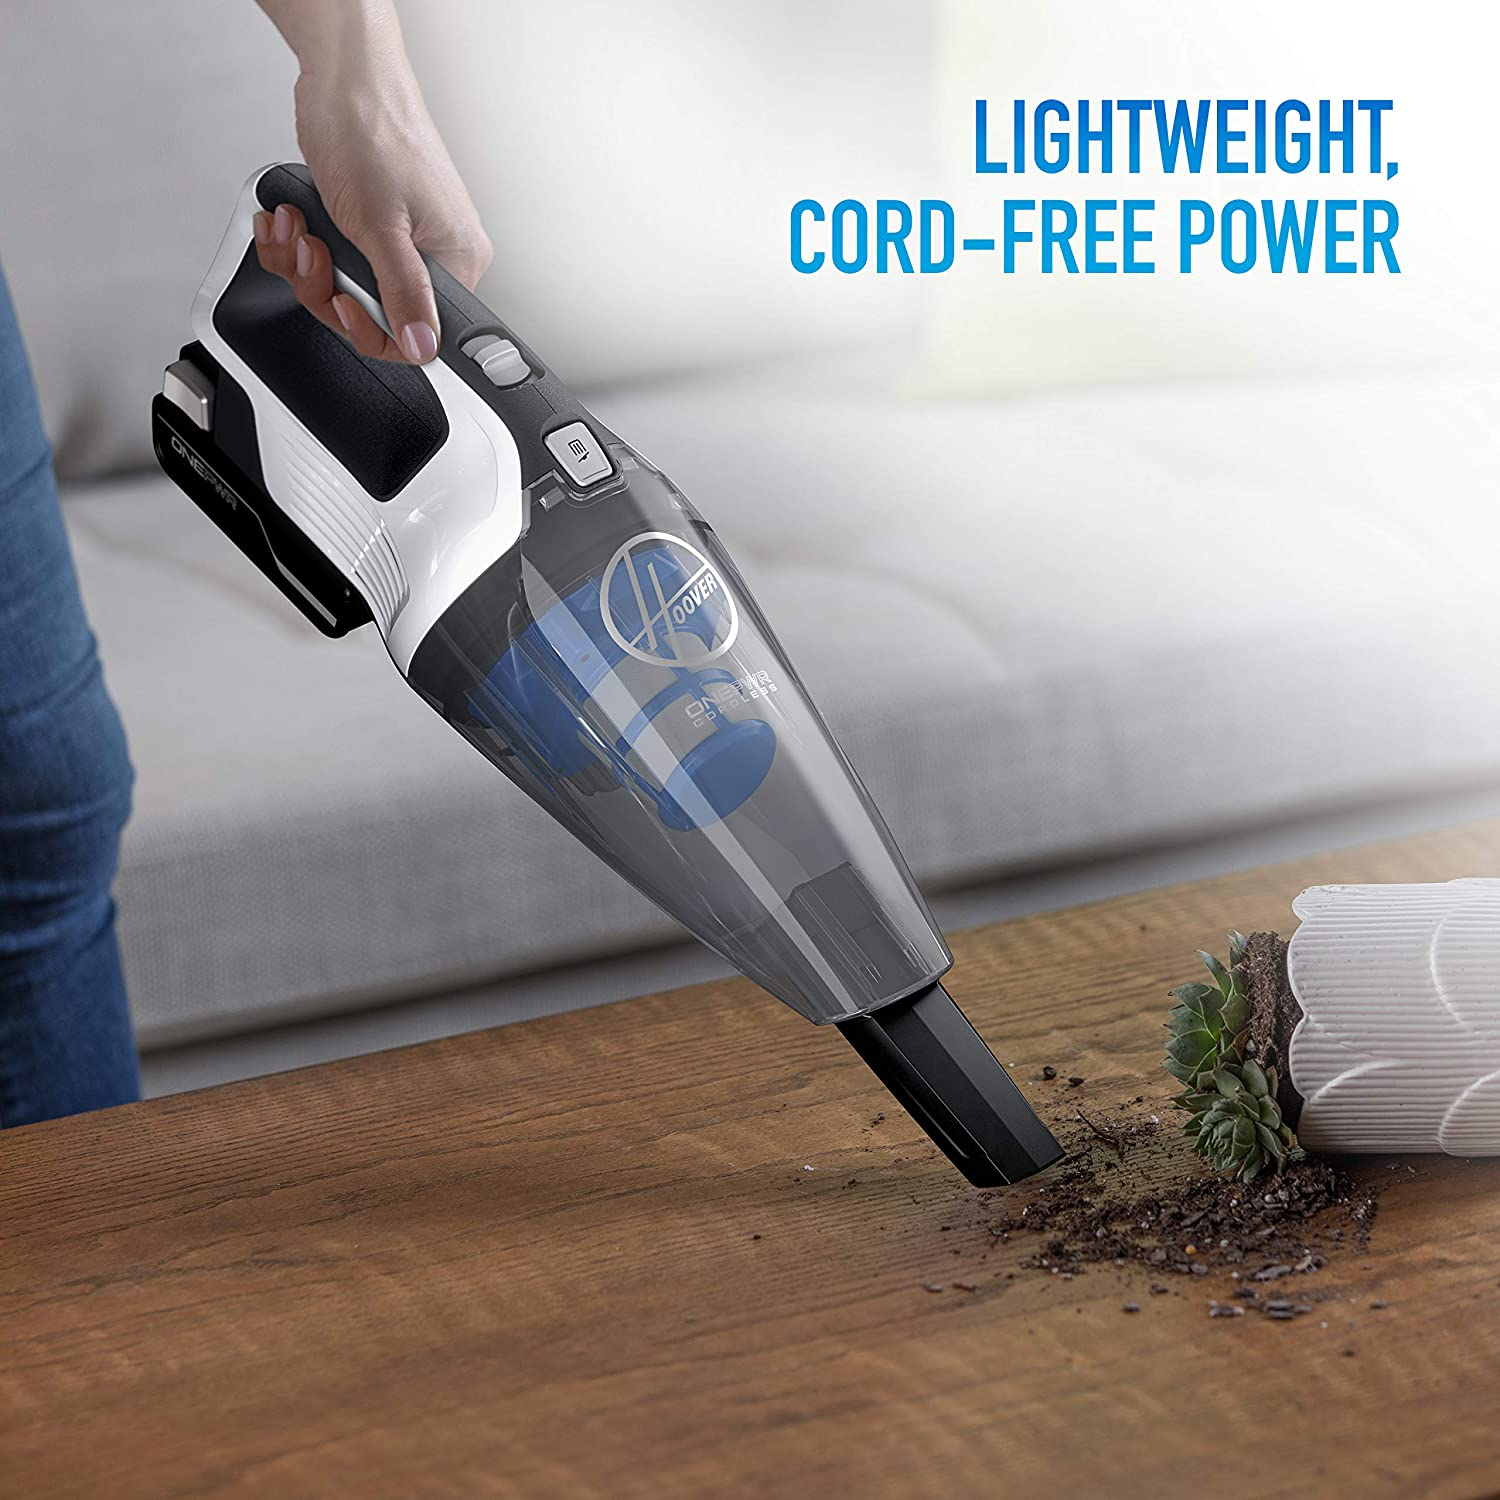 Lightweight BH57005 White Battery Powered Hoover ONEPWR Cordless Hand Held Vacuum Cleaner